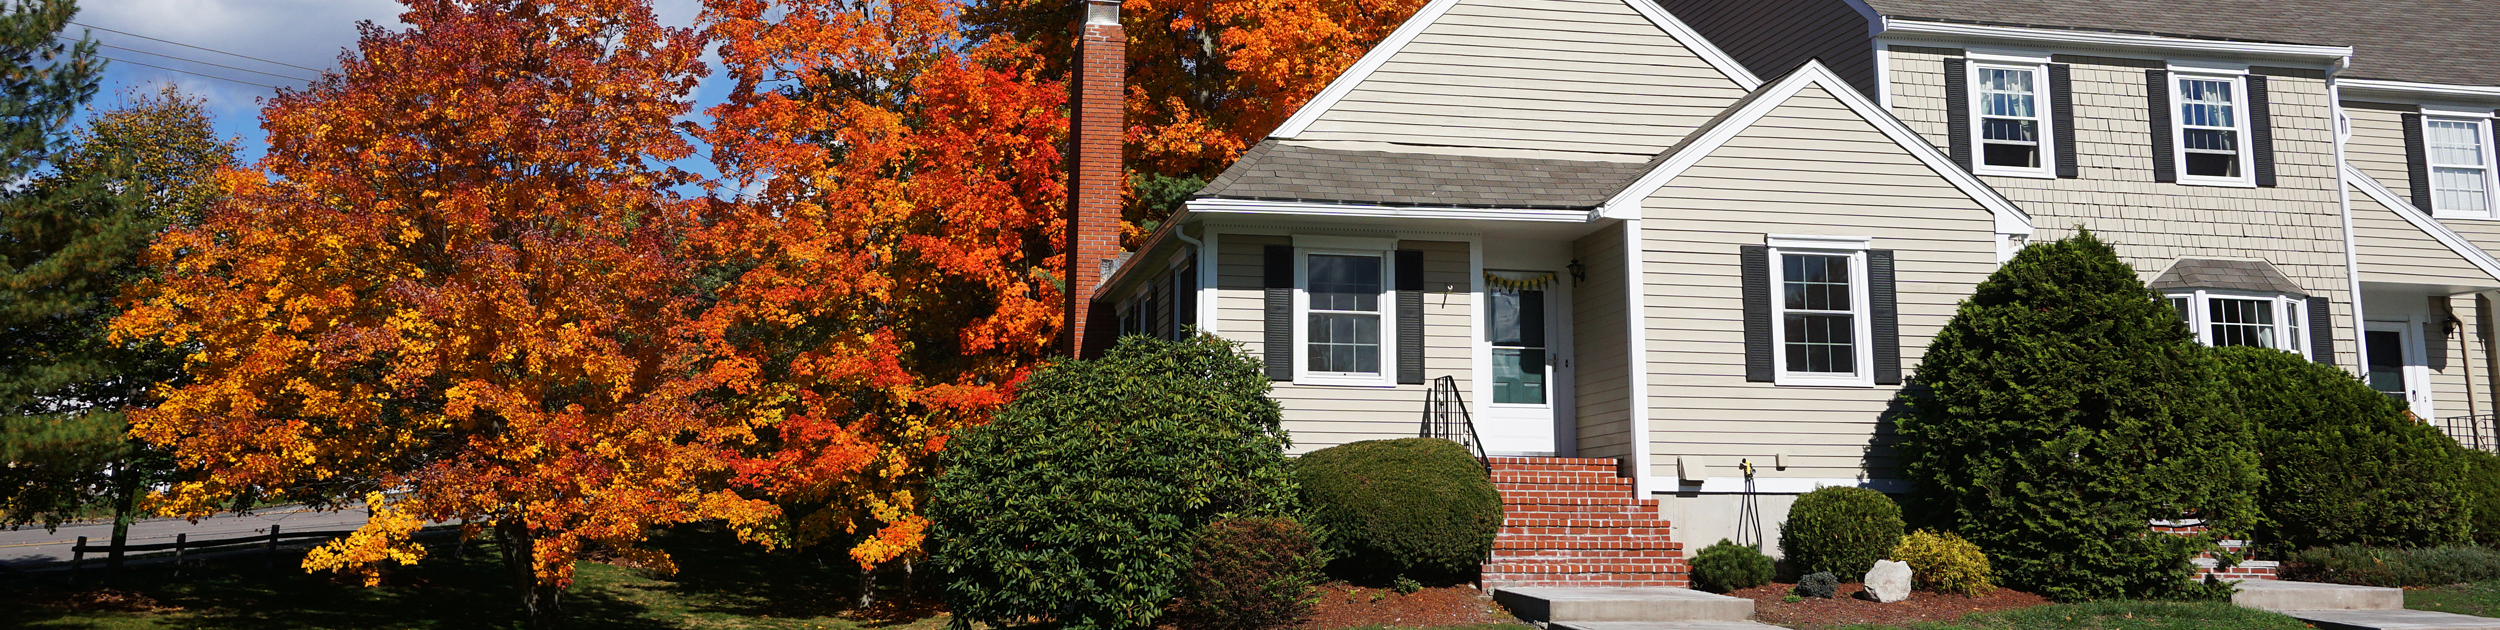 beautiful home with Fall foliage surrounding it